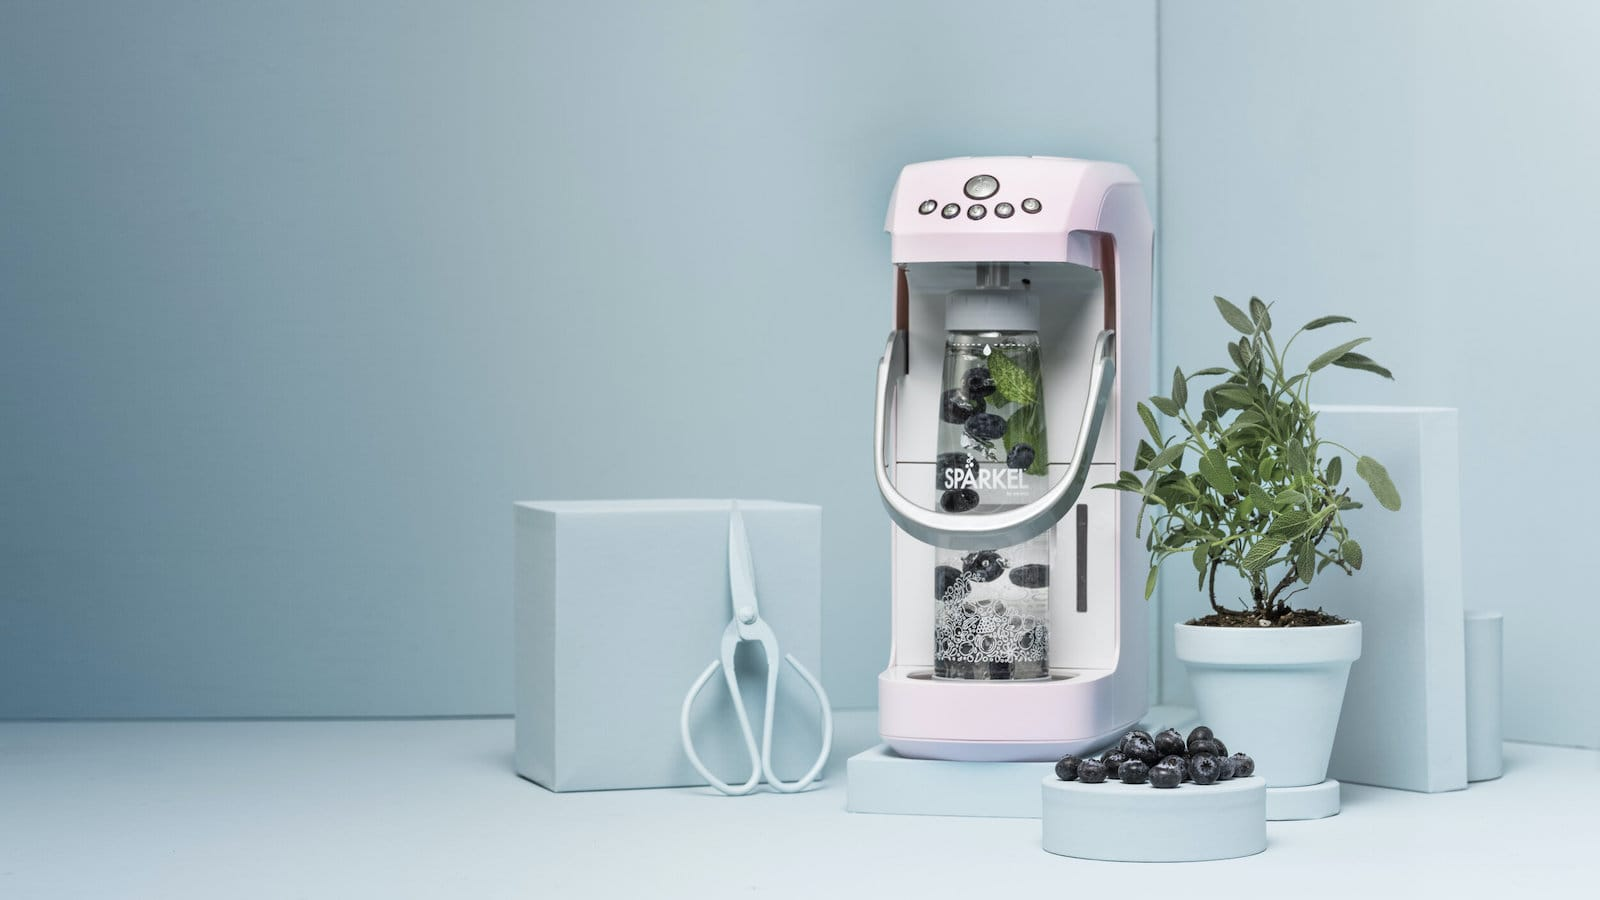 Spärkel Beverage System makes sparkling water in one bottle in 90 seconds